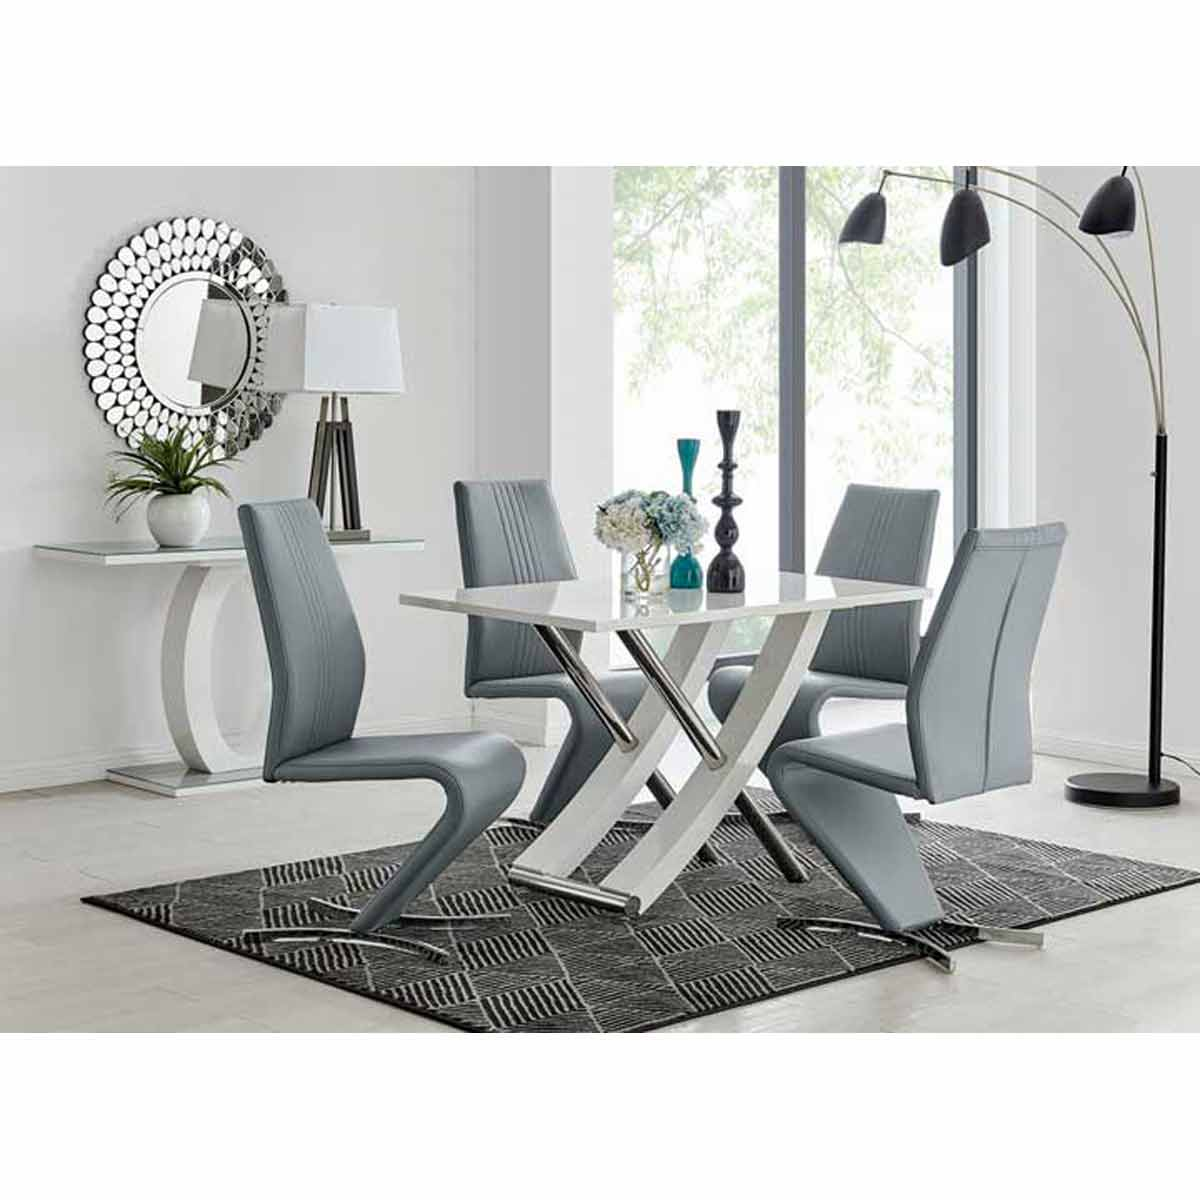 Furniture Box Mayfair 4 Seater White High Gloss And Stainless Steel Dining Table And 4 Elephant Grey Luxury Willow Chairs Set